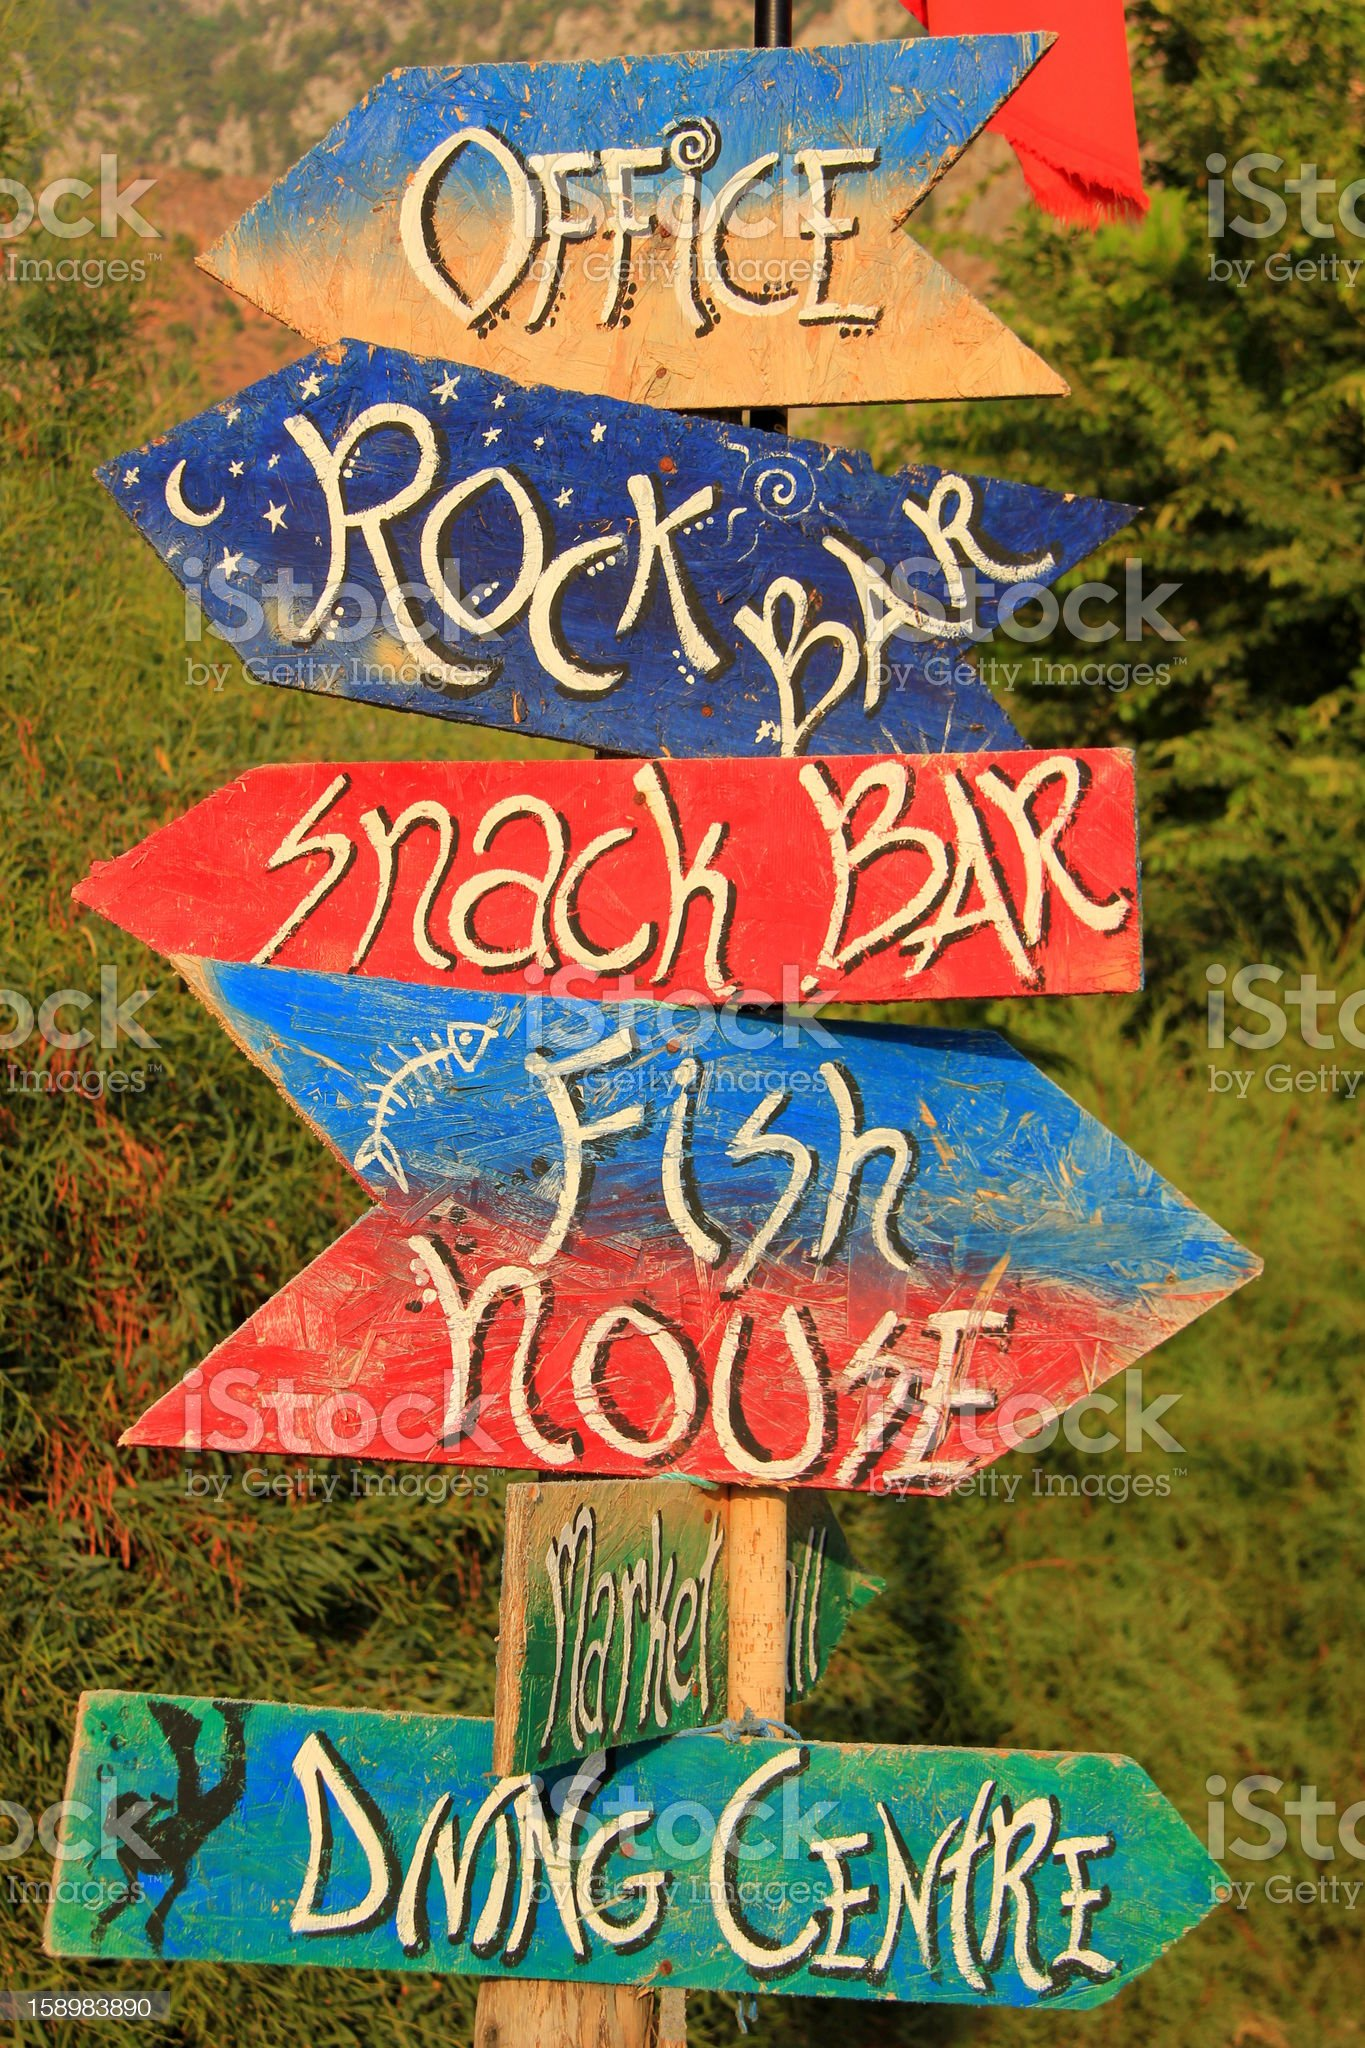 Wooden direction sign post pointing in different directions royalty-free stock photo